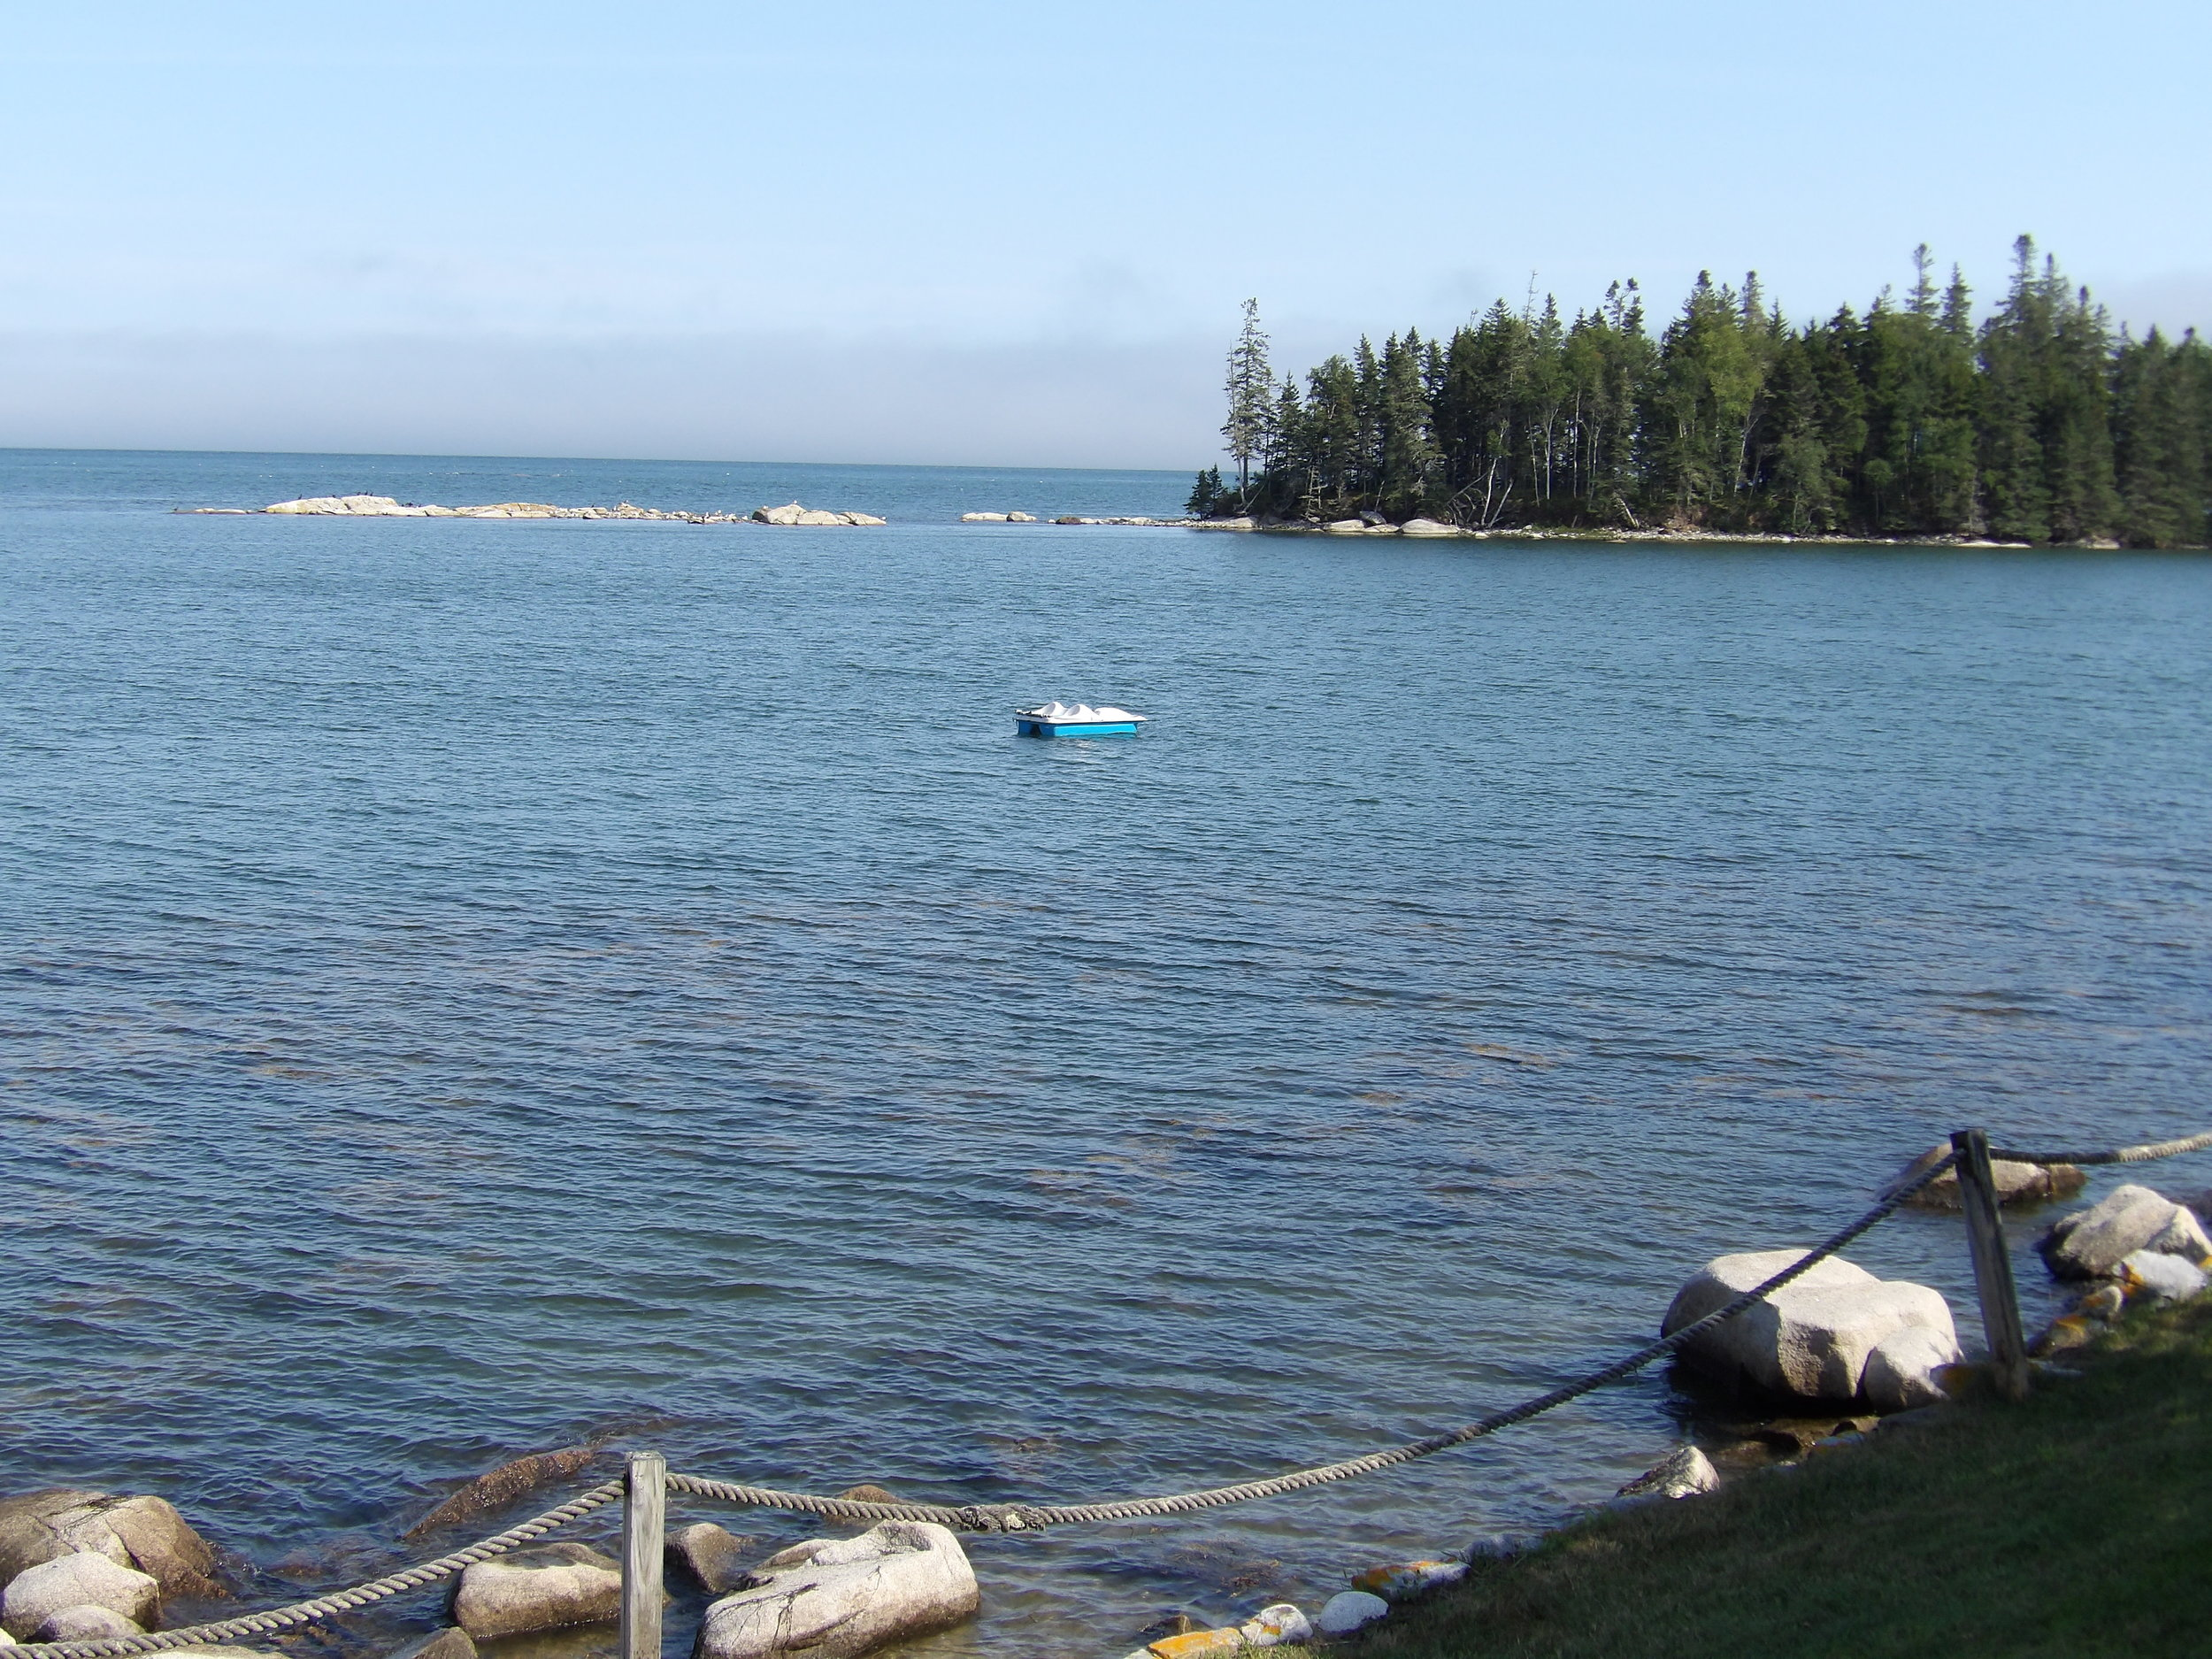 Hall's Cove:The View - The Beach • The Water • Boats • Flags • Fog Sunrises • Attractions